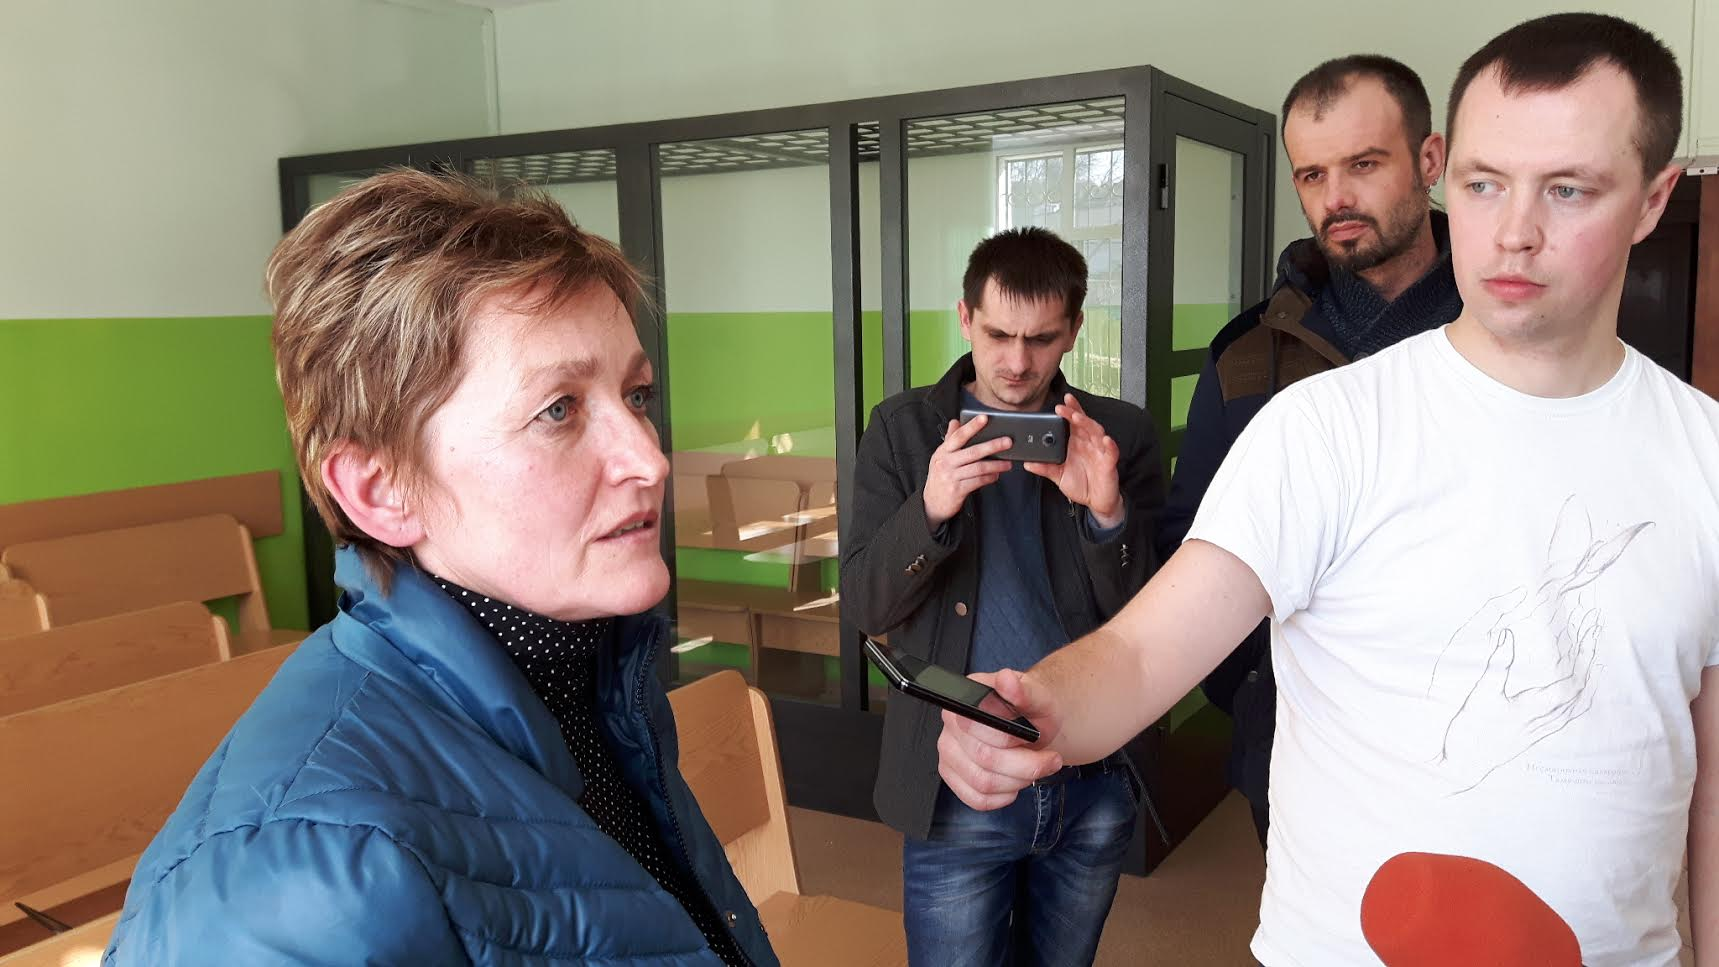 RFE/RL journalist arrested in Belarus, as protests escalate